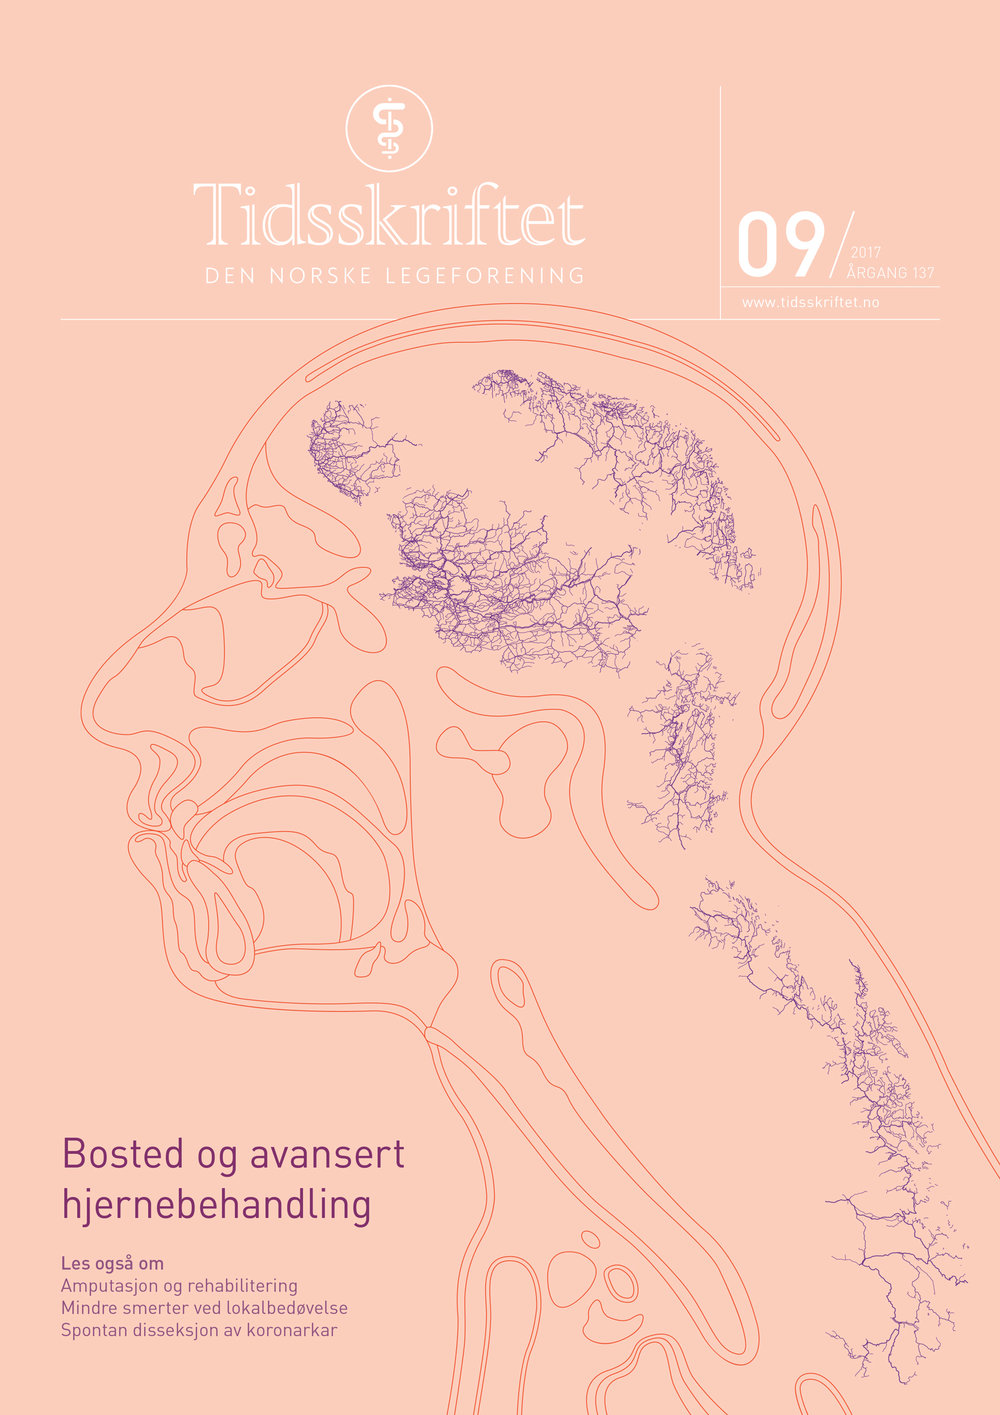 Layout/design by Lotte Grønneberg.